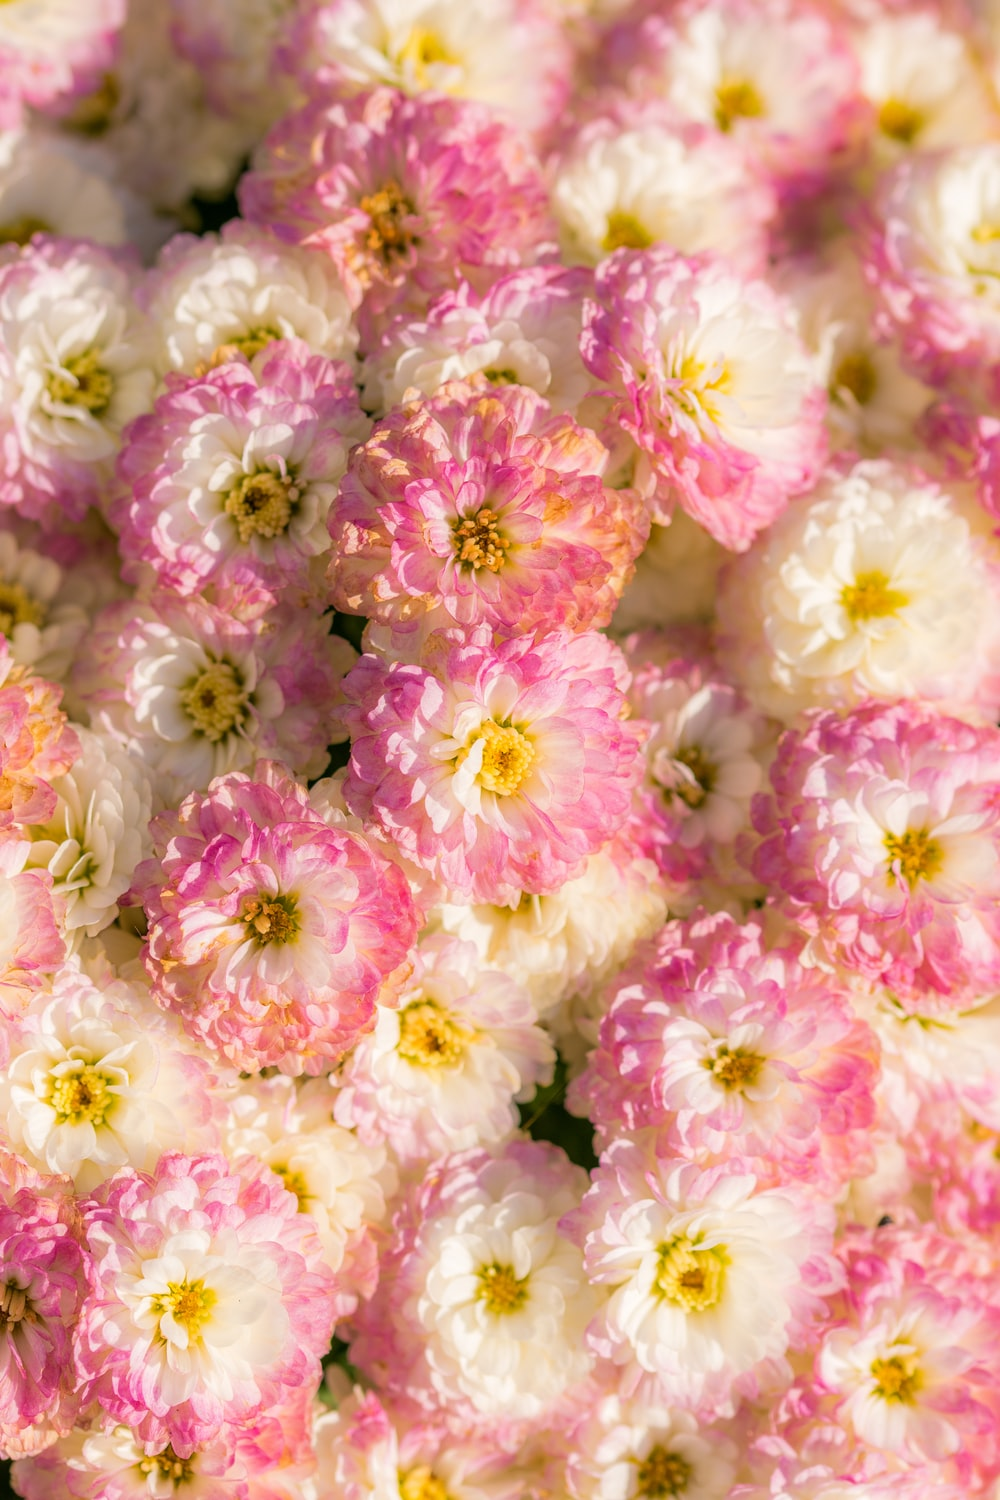 white-and-pink petaled flower lot